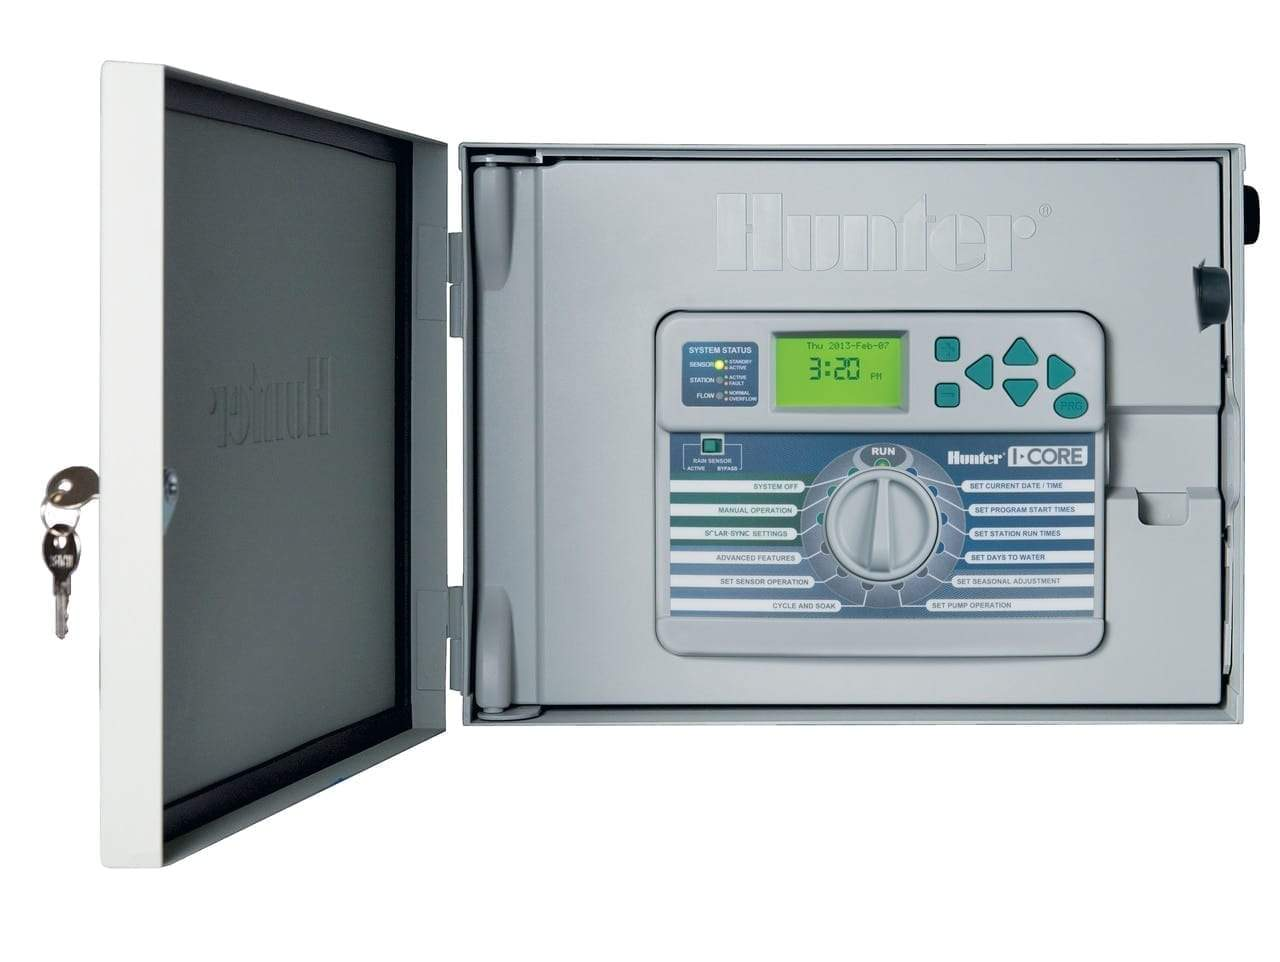 Hunter - IC-600M - I-Core 6 Station Controller w/ Metal Cabinet